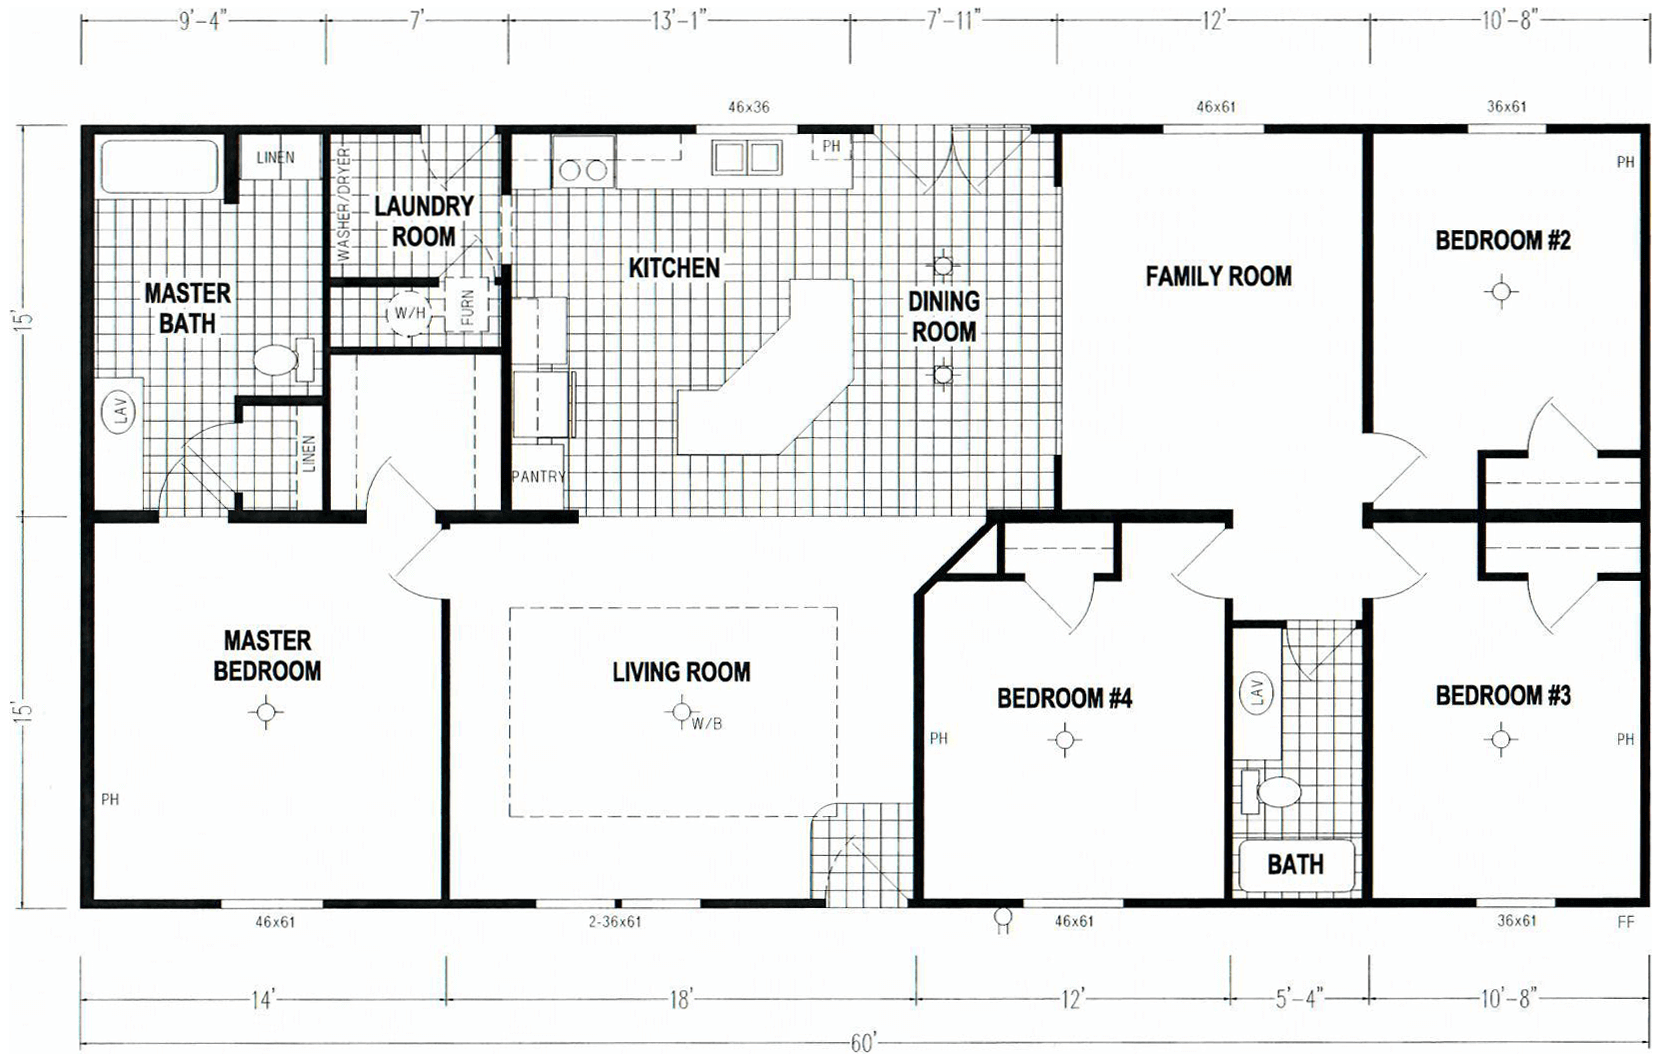 GS Courtyard Homes - Floor Plan - The Office